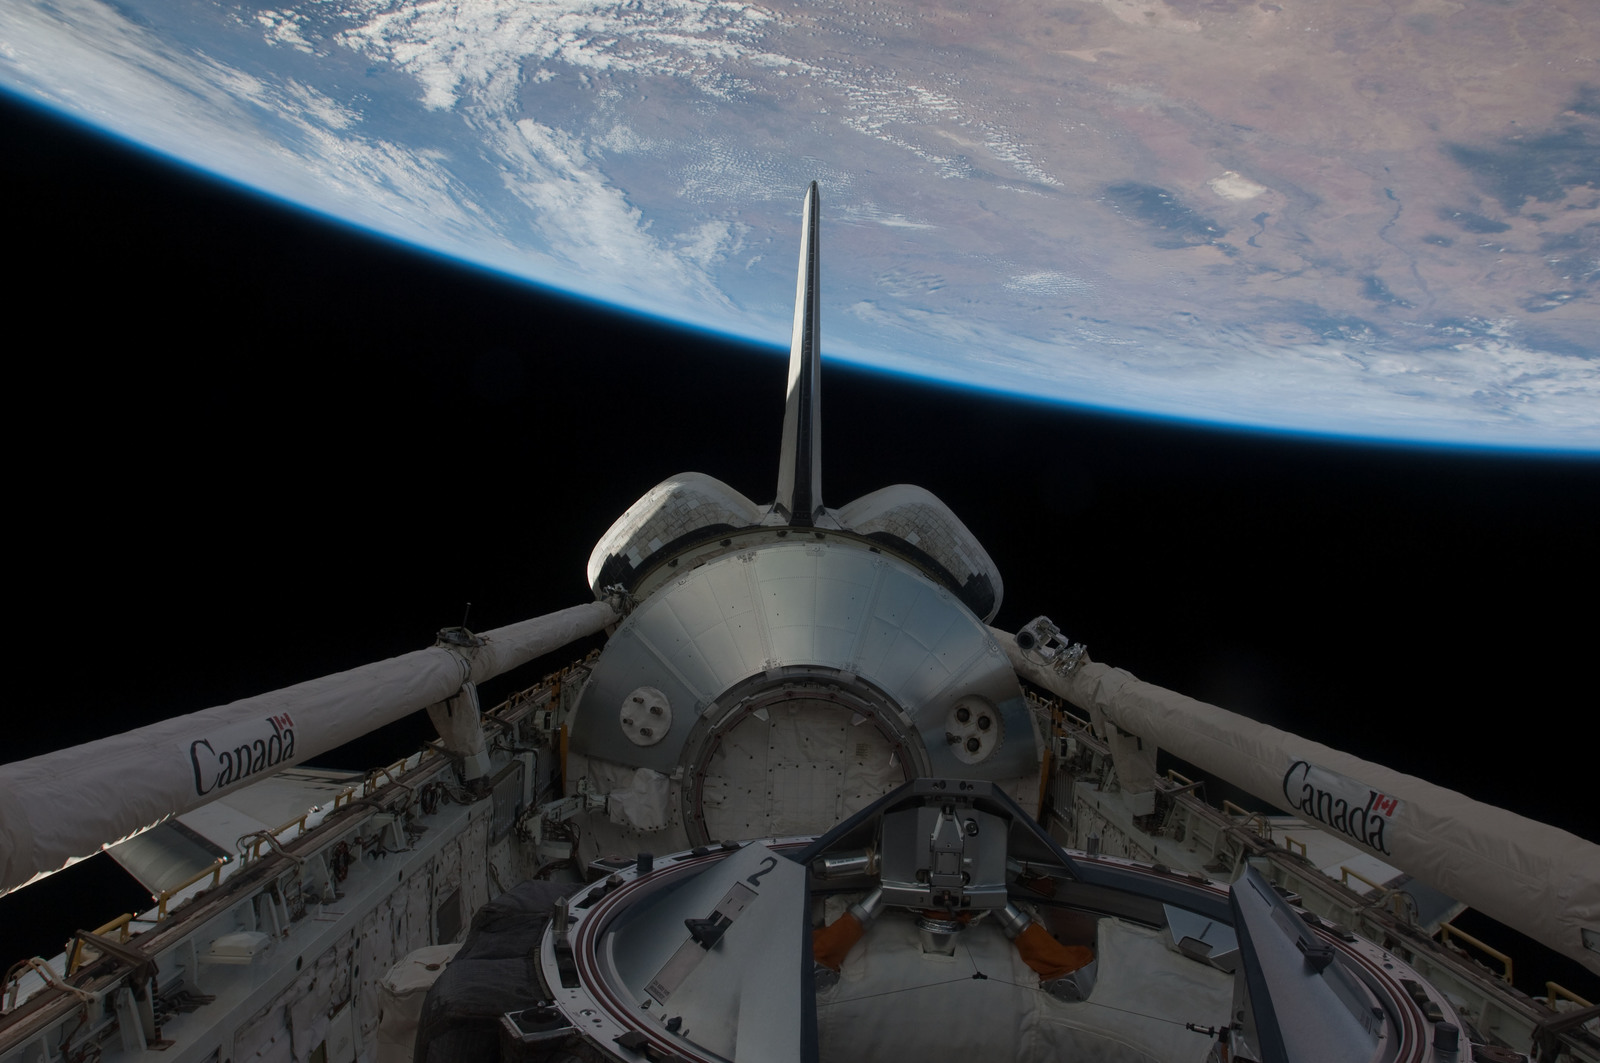 S126E026984 - STS-126 - Payload Bay of Endeavour